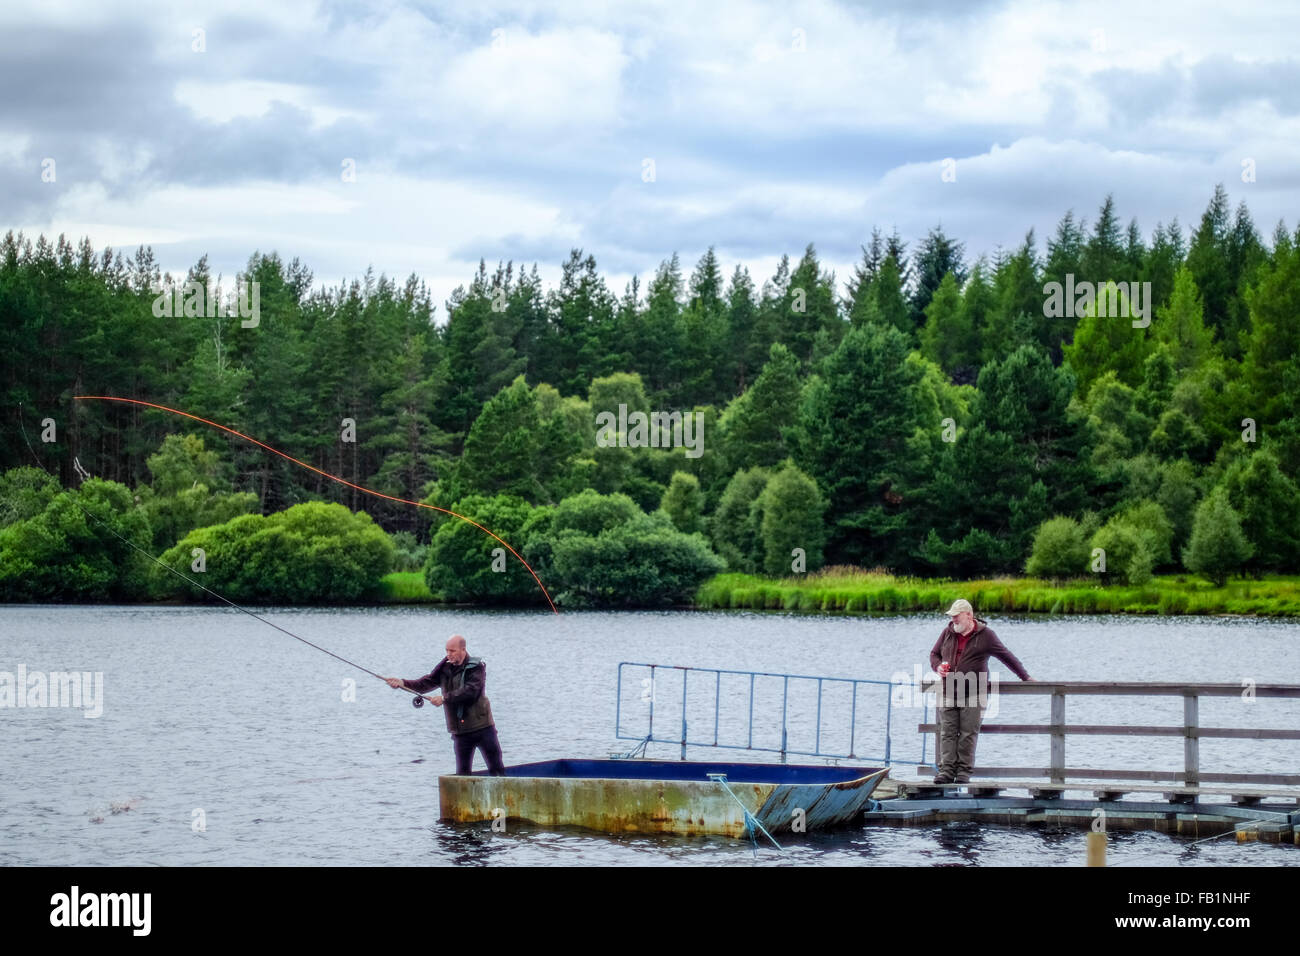 Scottish men fly fishing on a pier in Moy, in the highlands of Scotland. - Stock Image